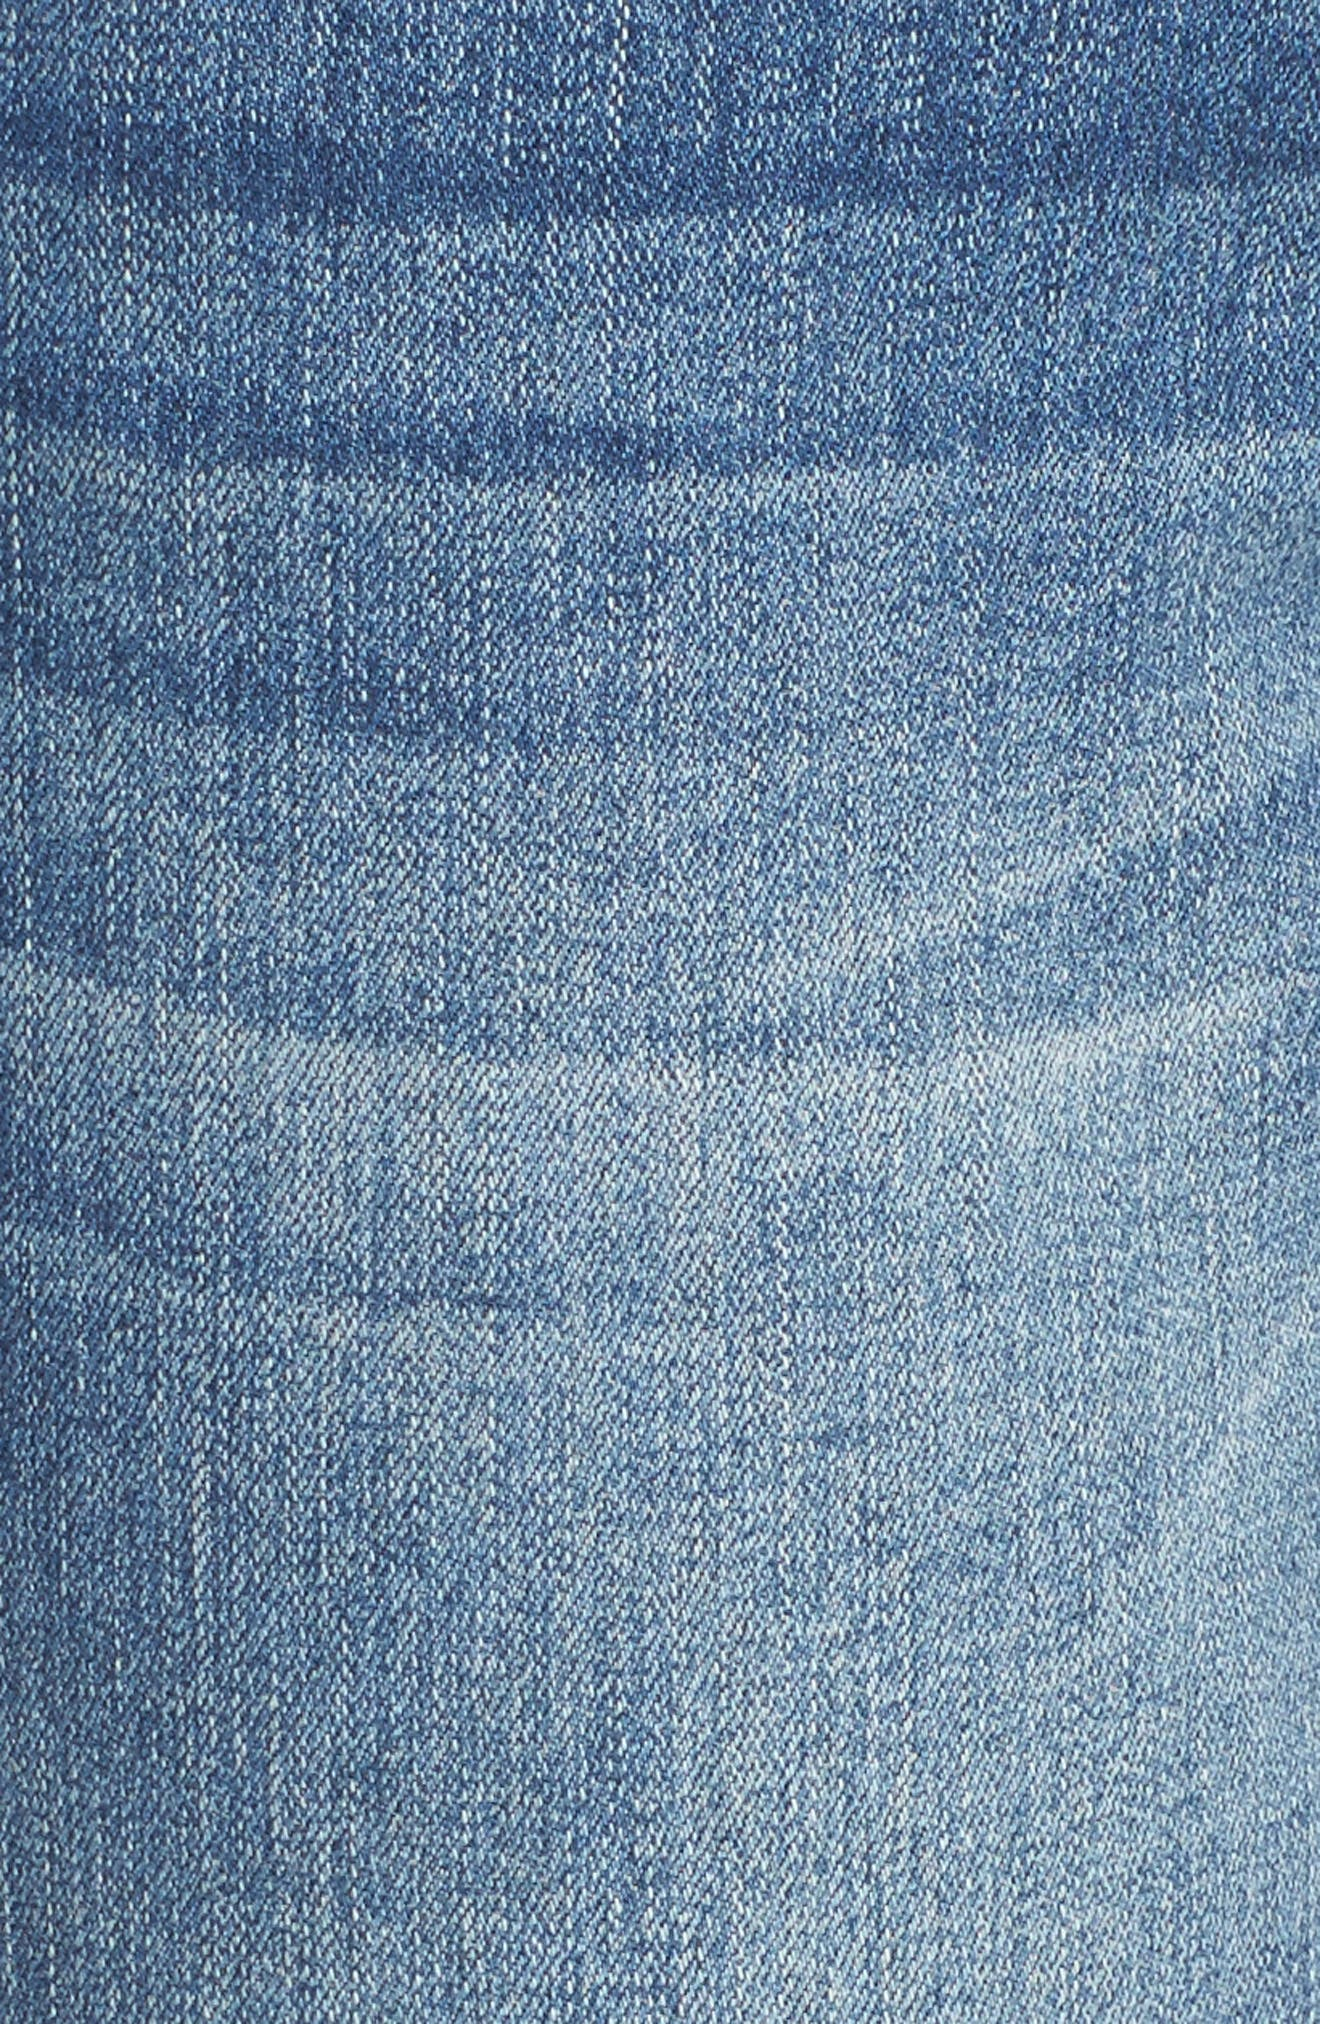 Long Straight Ankle Jeans,                             Alternate thumbnail 5, color,                             420